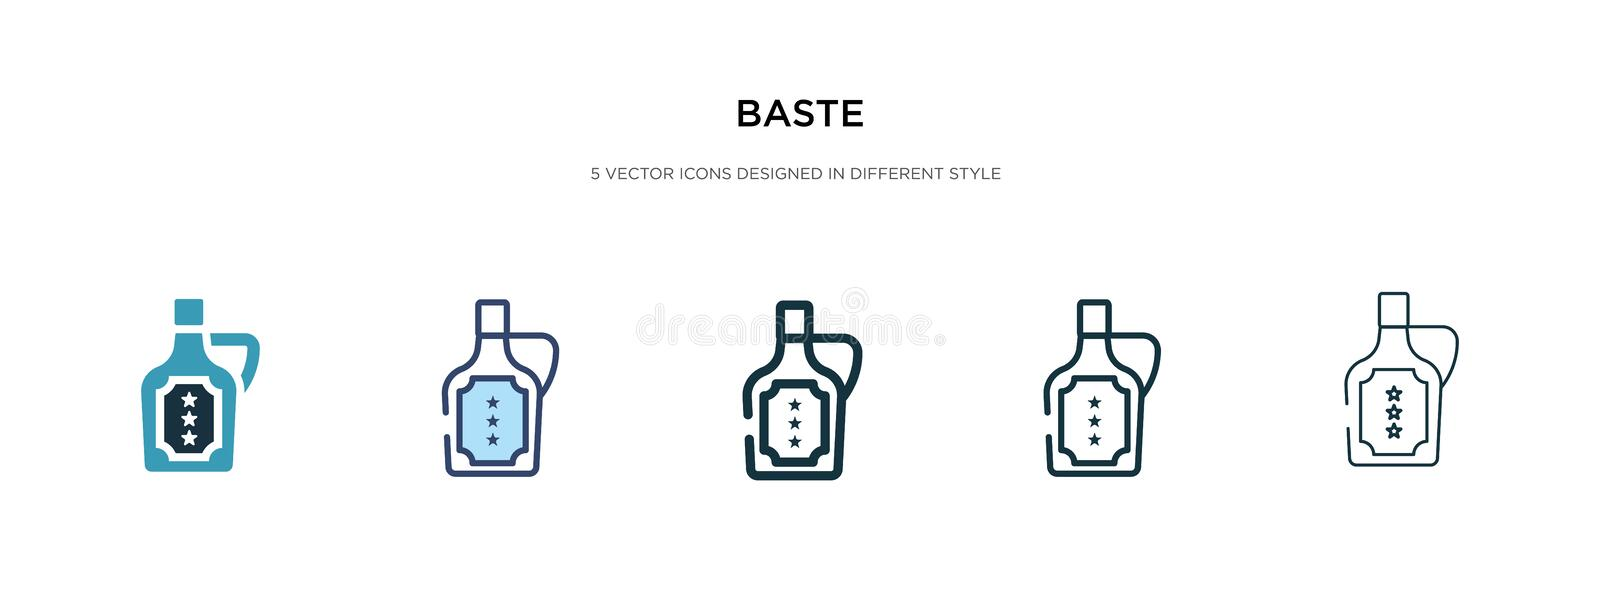 Baste icon in different style vector illustration. two colored and black baste vector icons designed in filled, outline, line and royalty free illustration